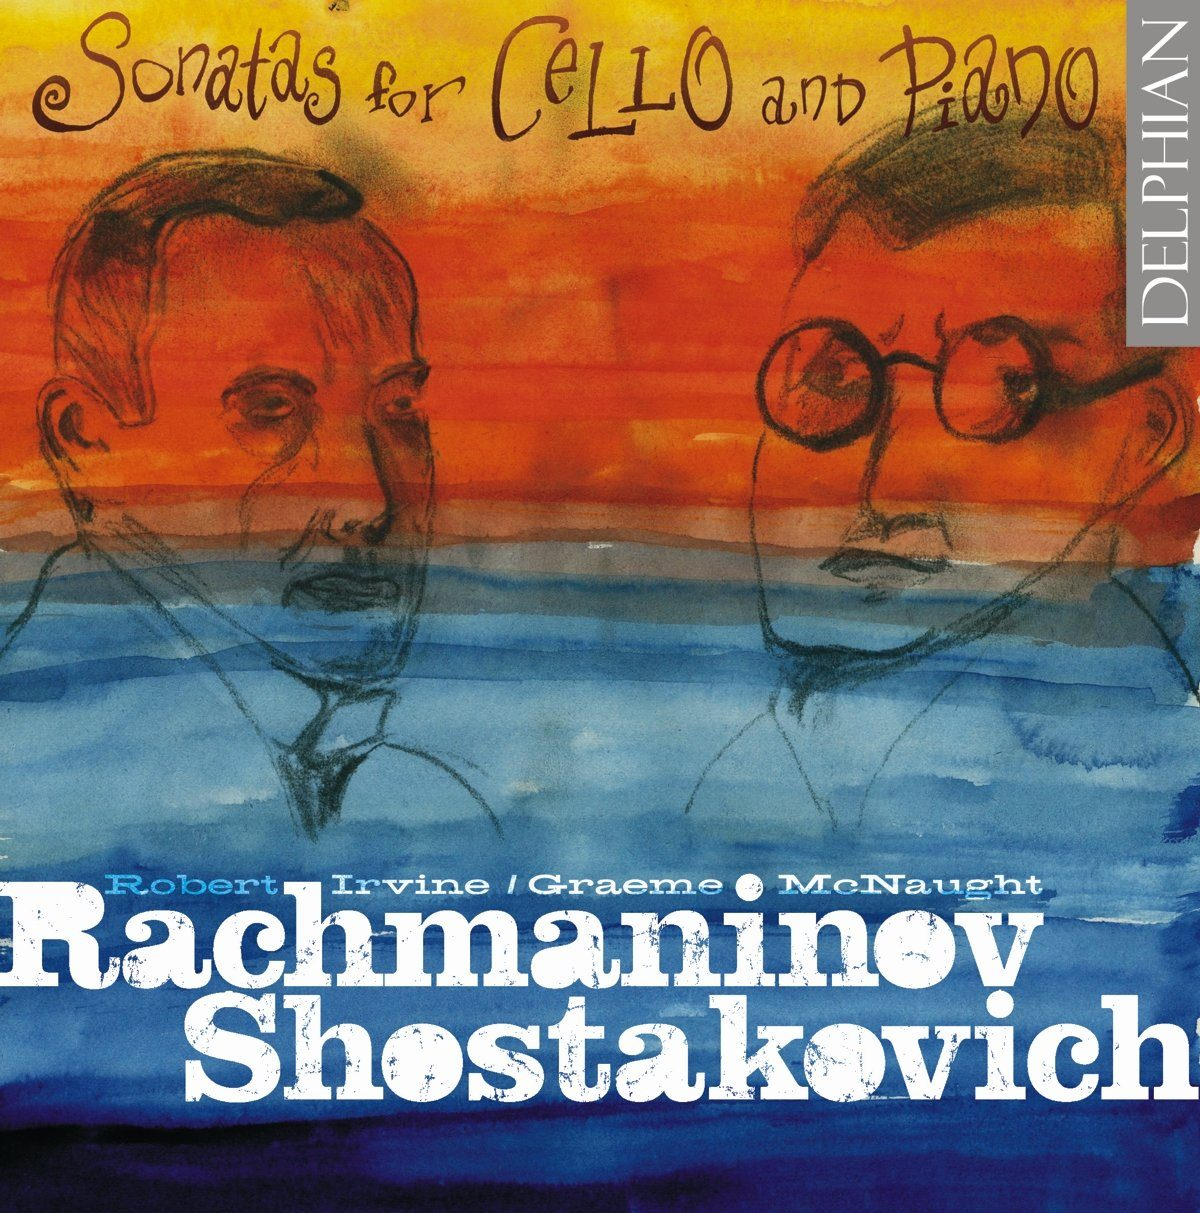 Rachmaninov / Shostakovich: Sonatas for cello and piano CD Delphian Records